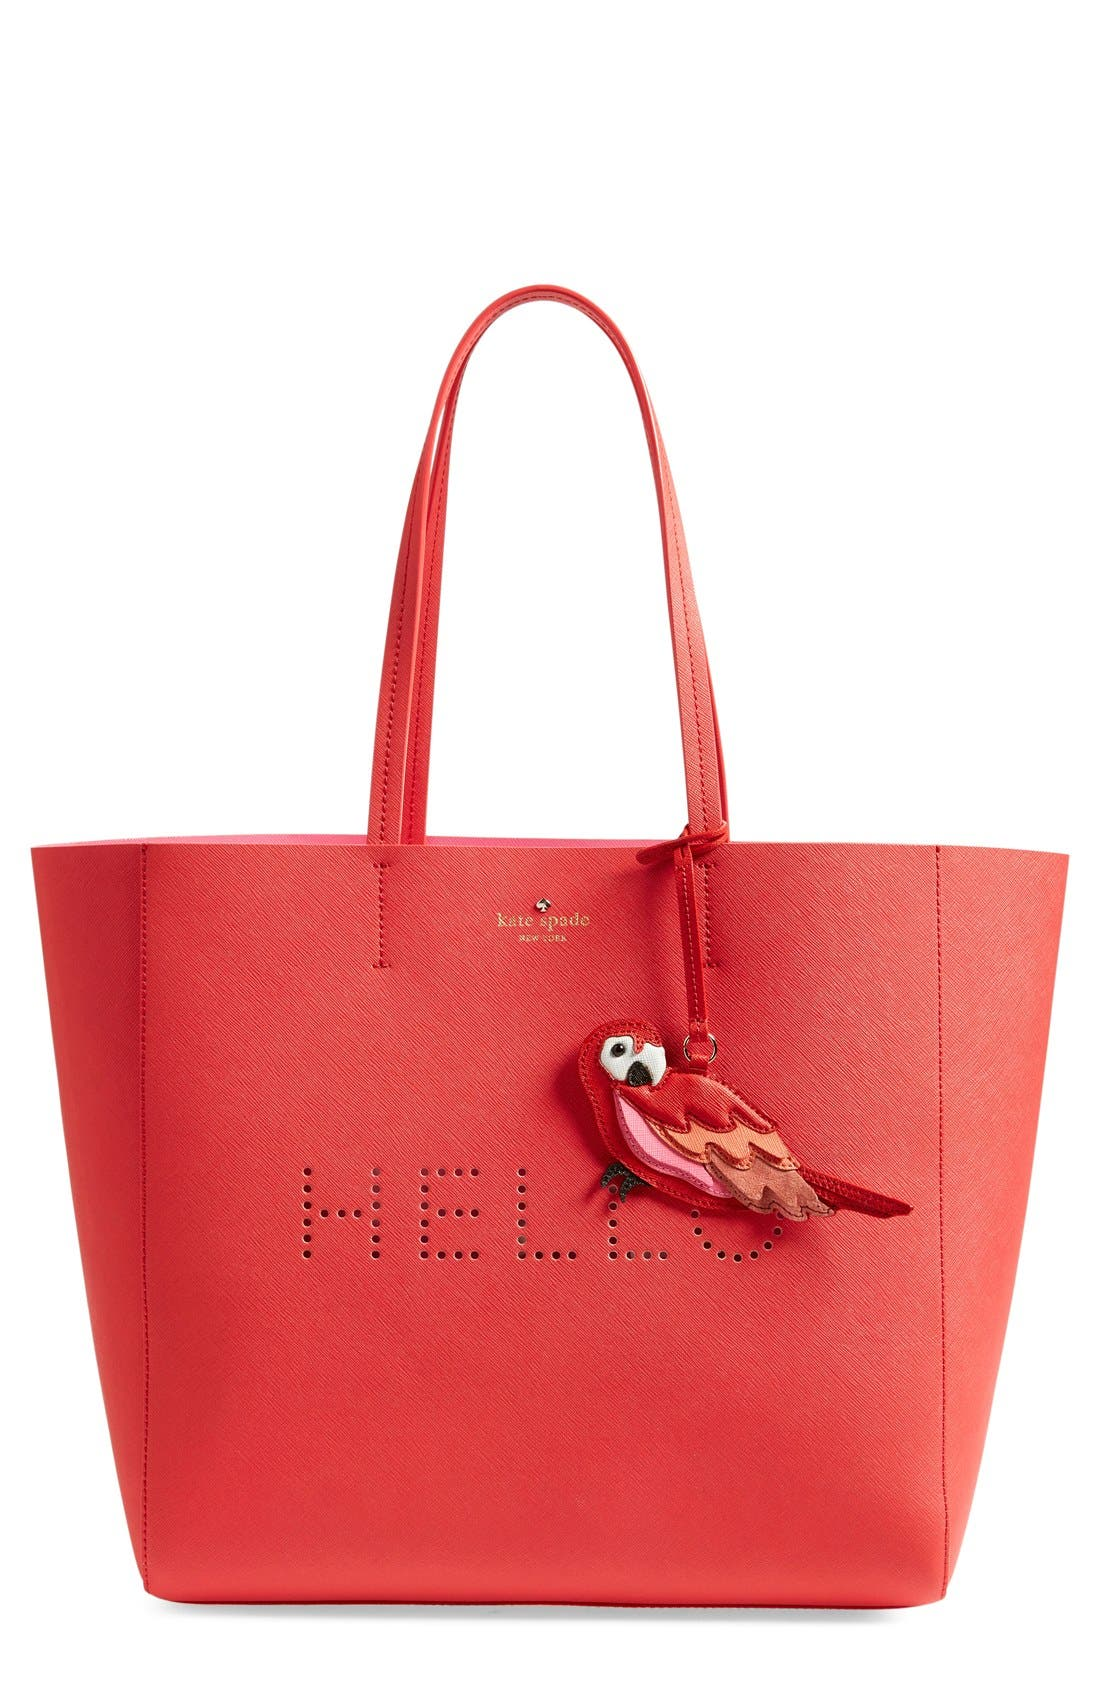 Alternate Image 1 Selected - kate spade new york 'flights of fancy - hallie' saffiano leather tote